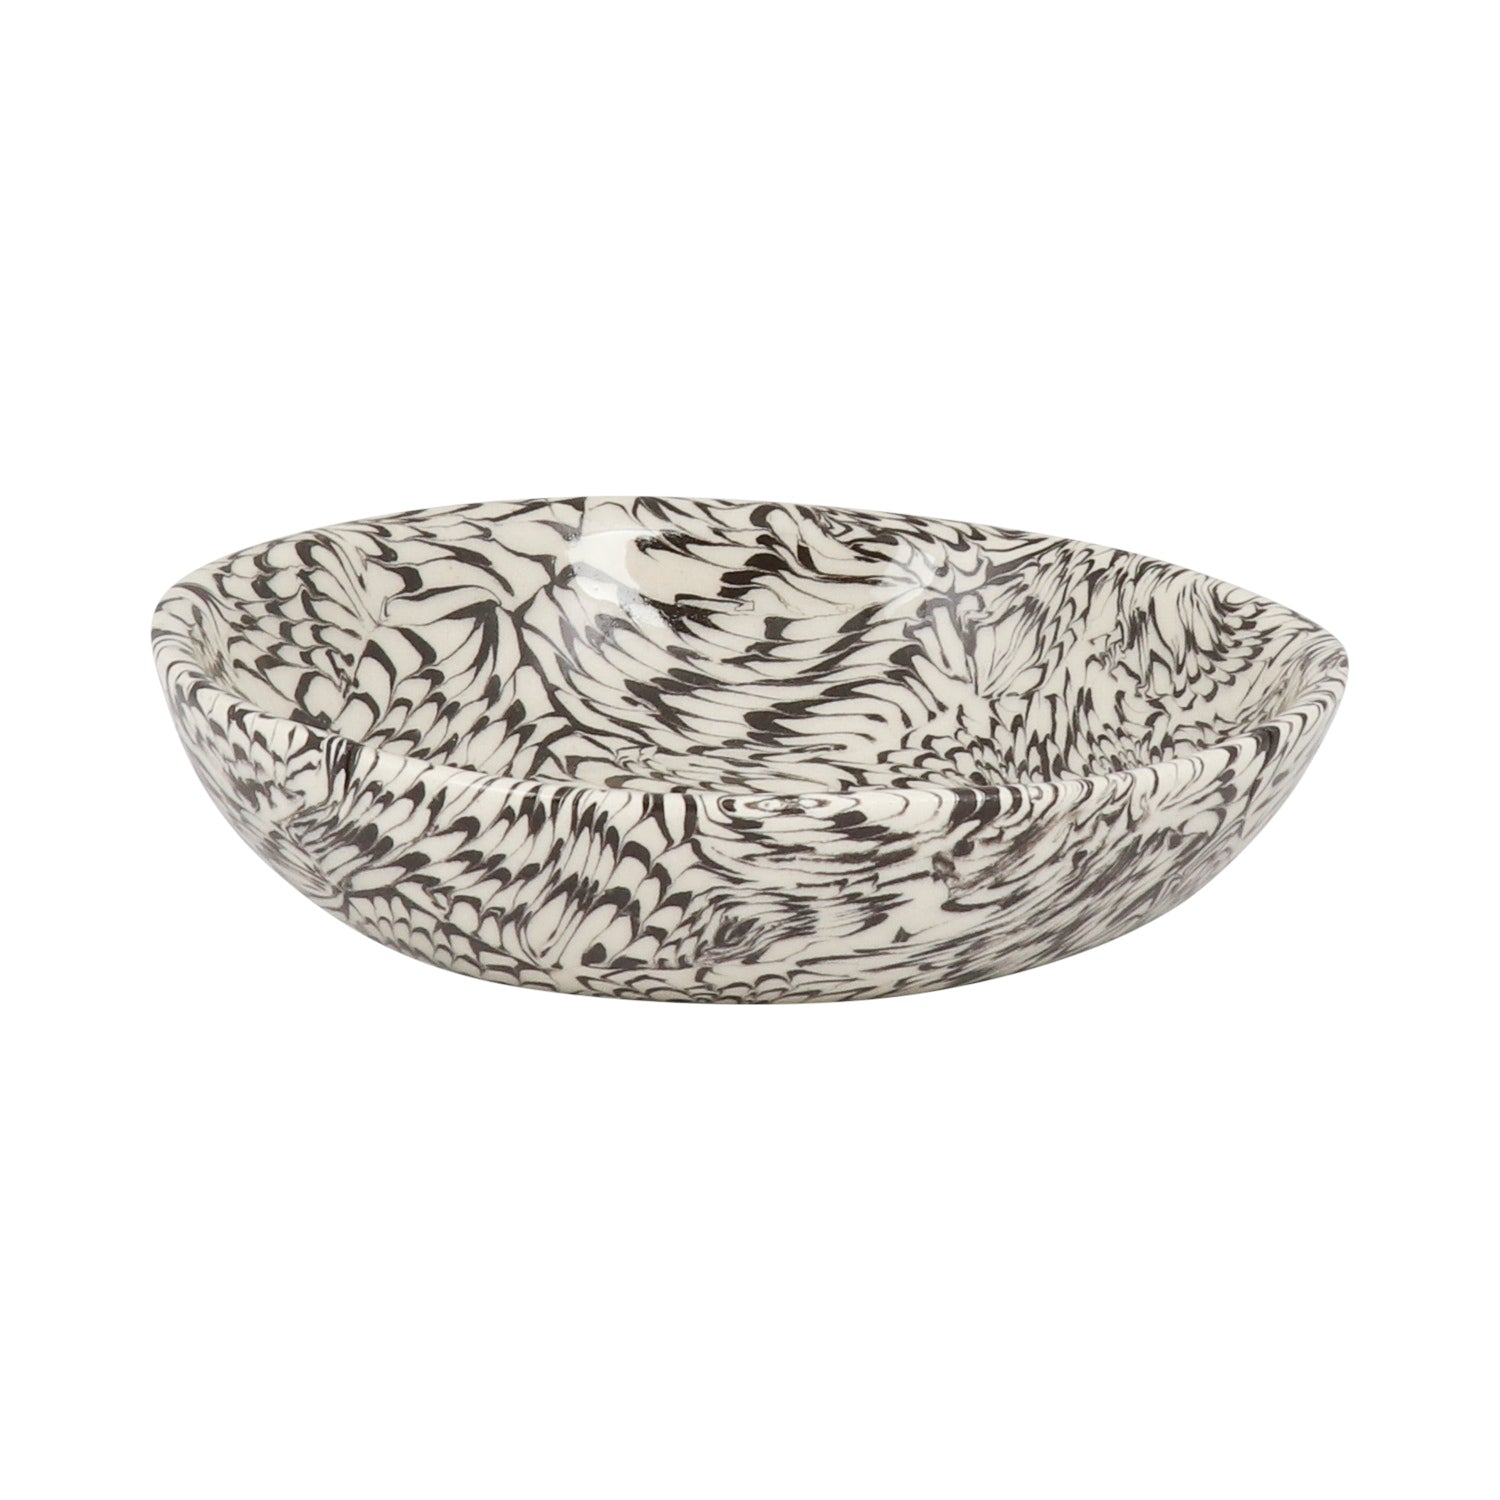 Black & Cream Swirl Earthenware - Condiment Bowl 13cm